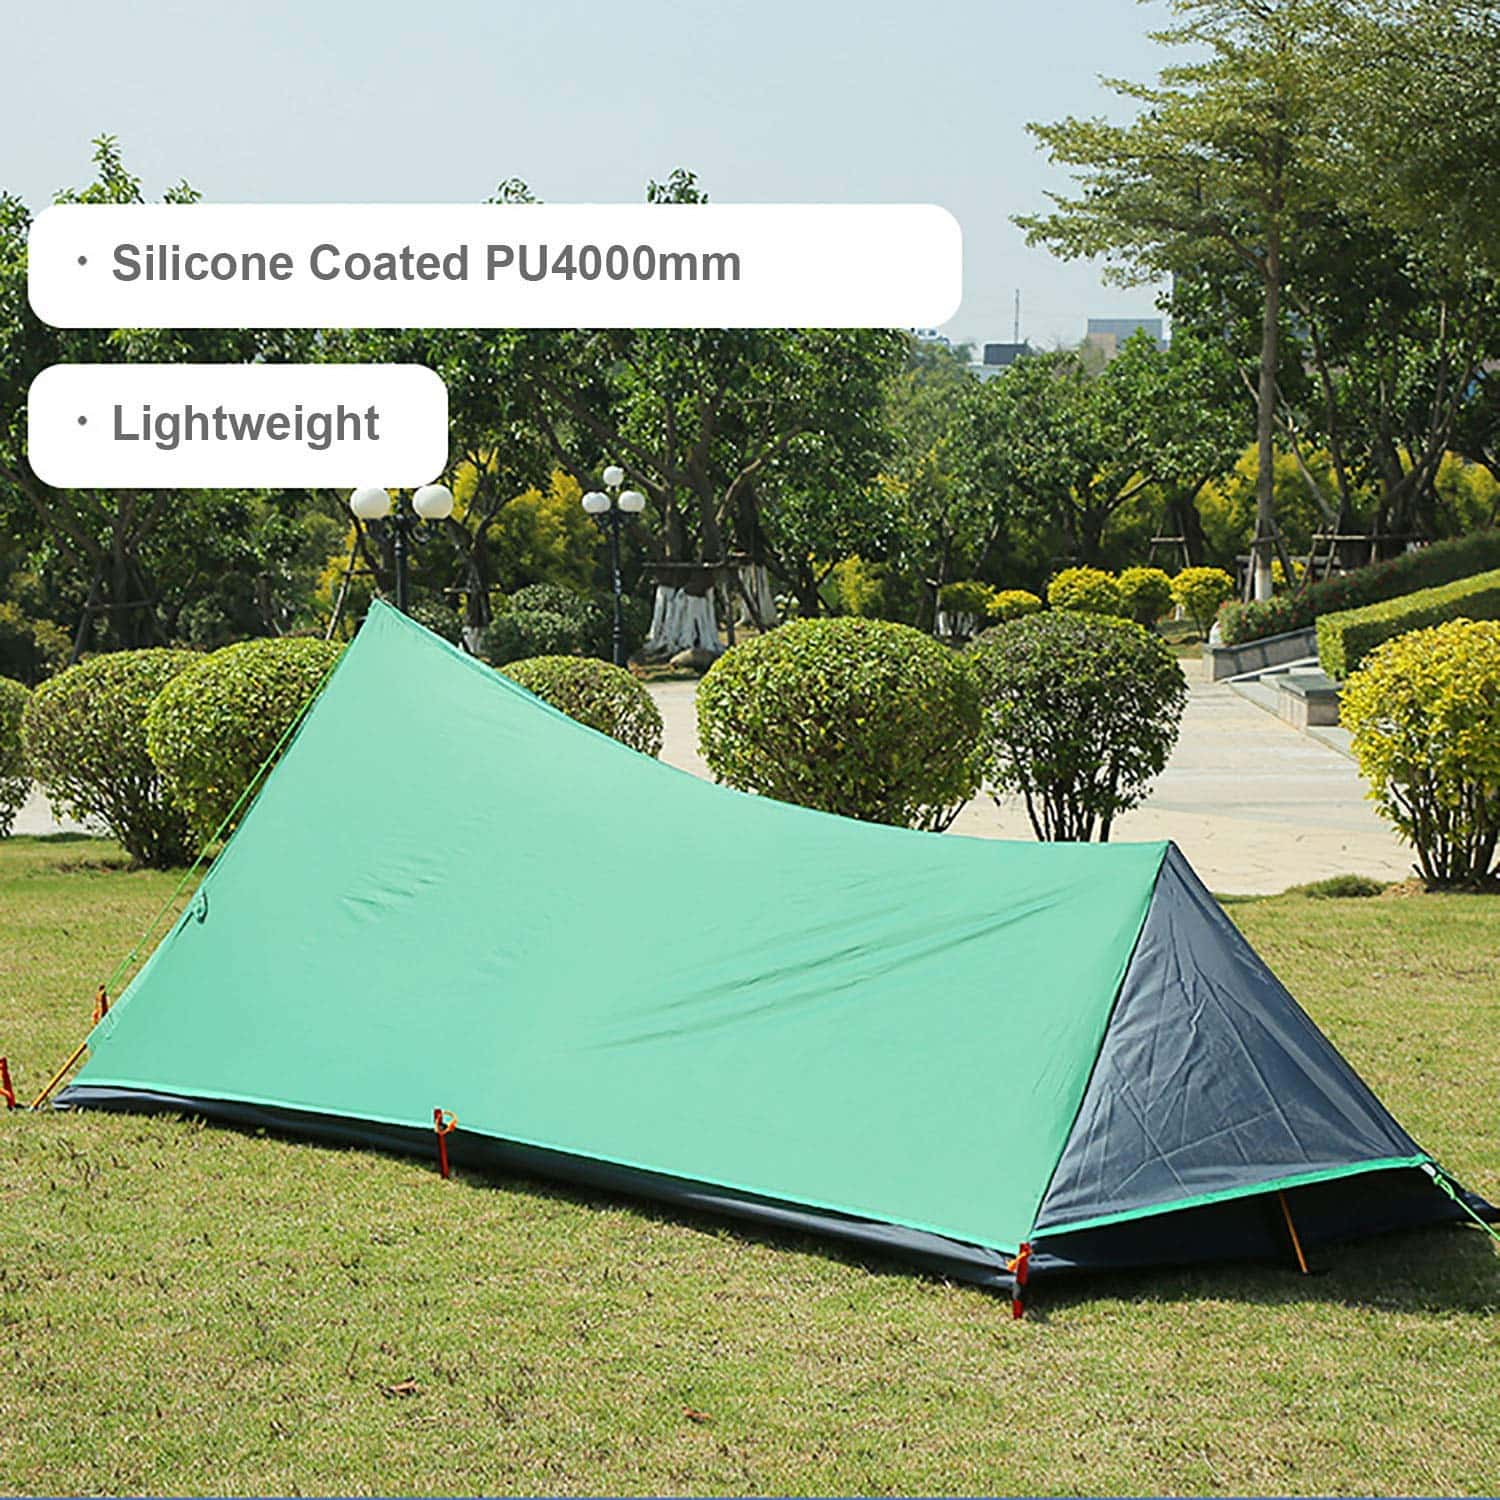 Flyzy tower tent - photo 4